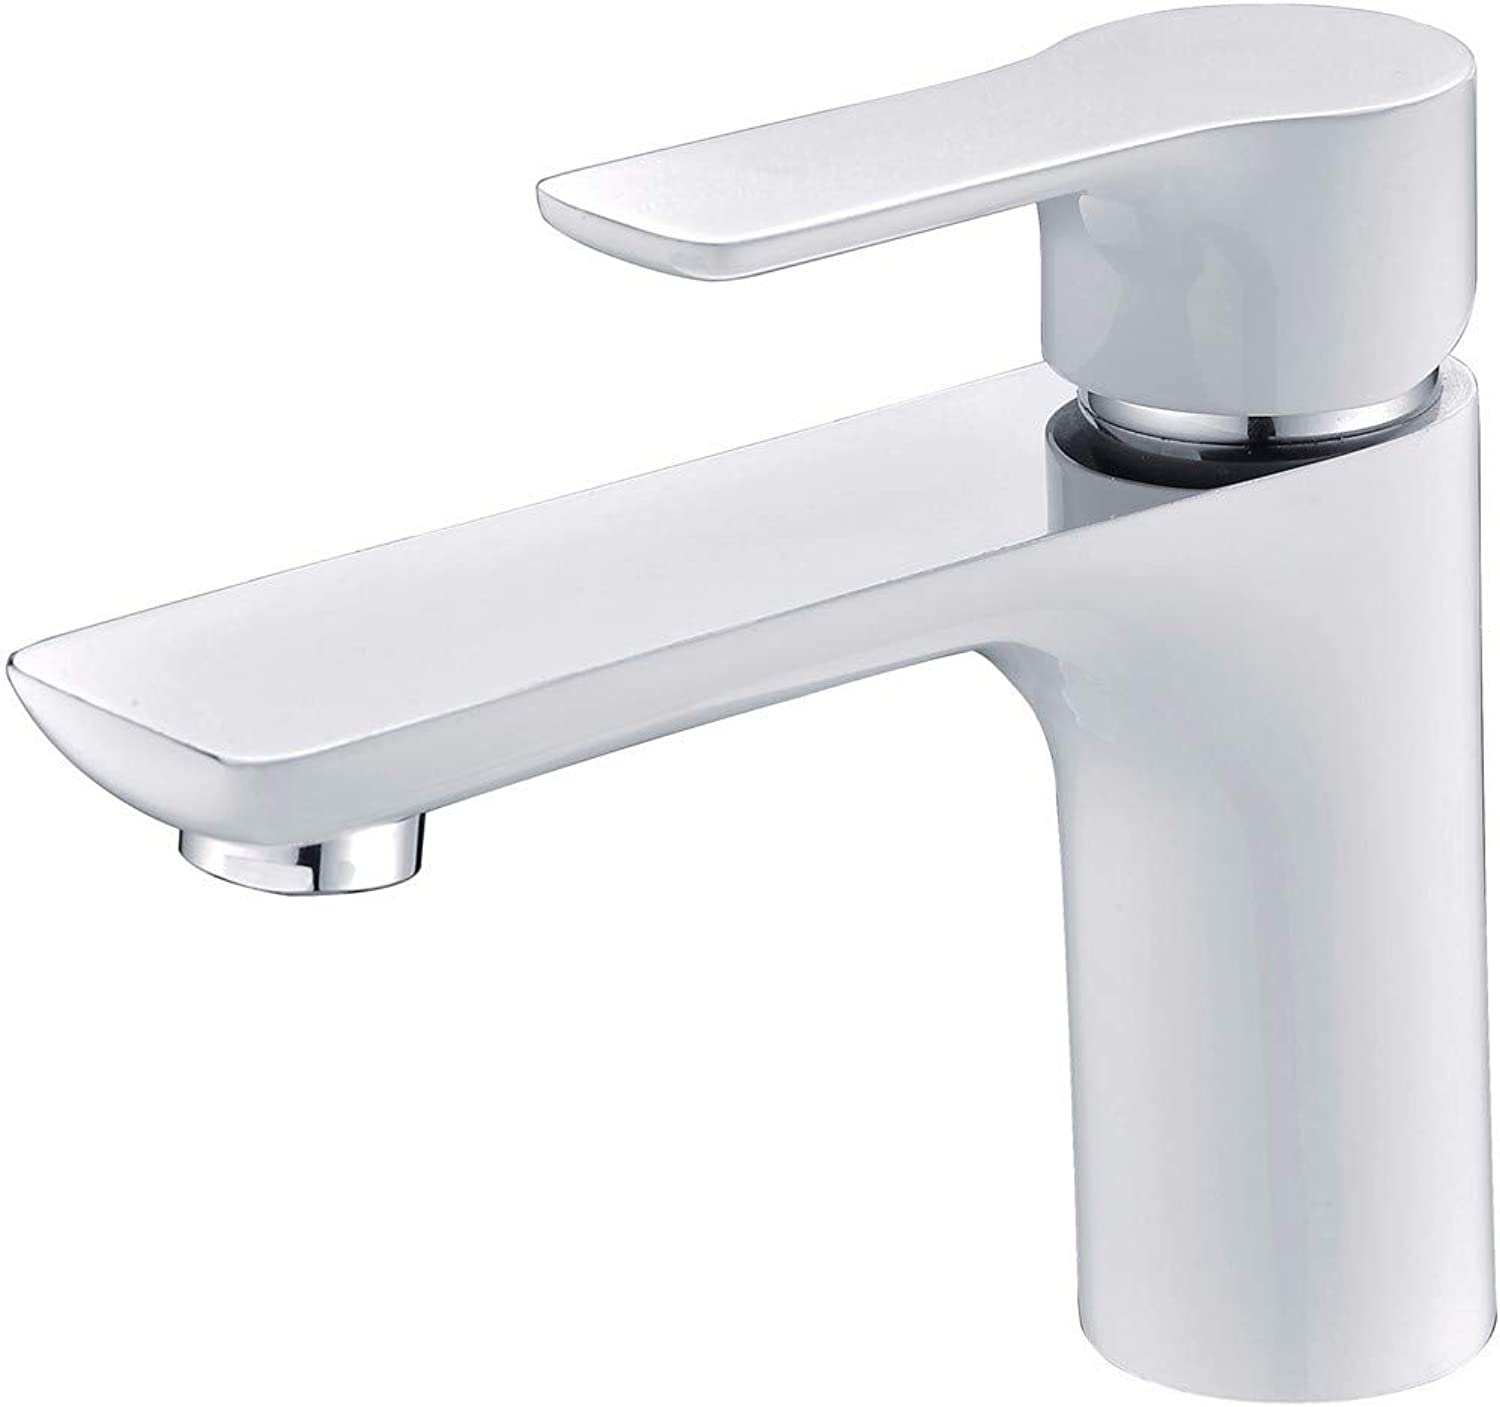 FT-13 Hot and Cold Faucet Retro Faucet Kitchen Bathroom Faucet Basin Faucet Basin washbasin Faucet